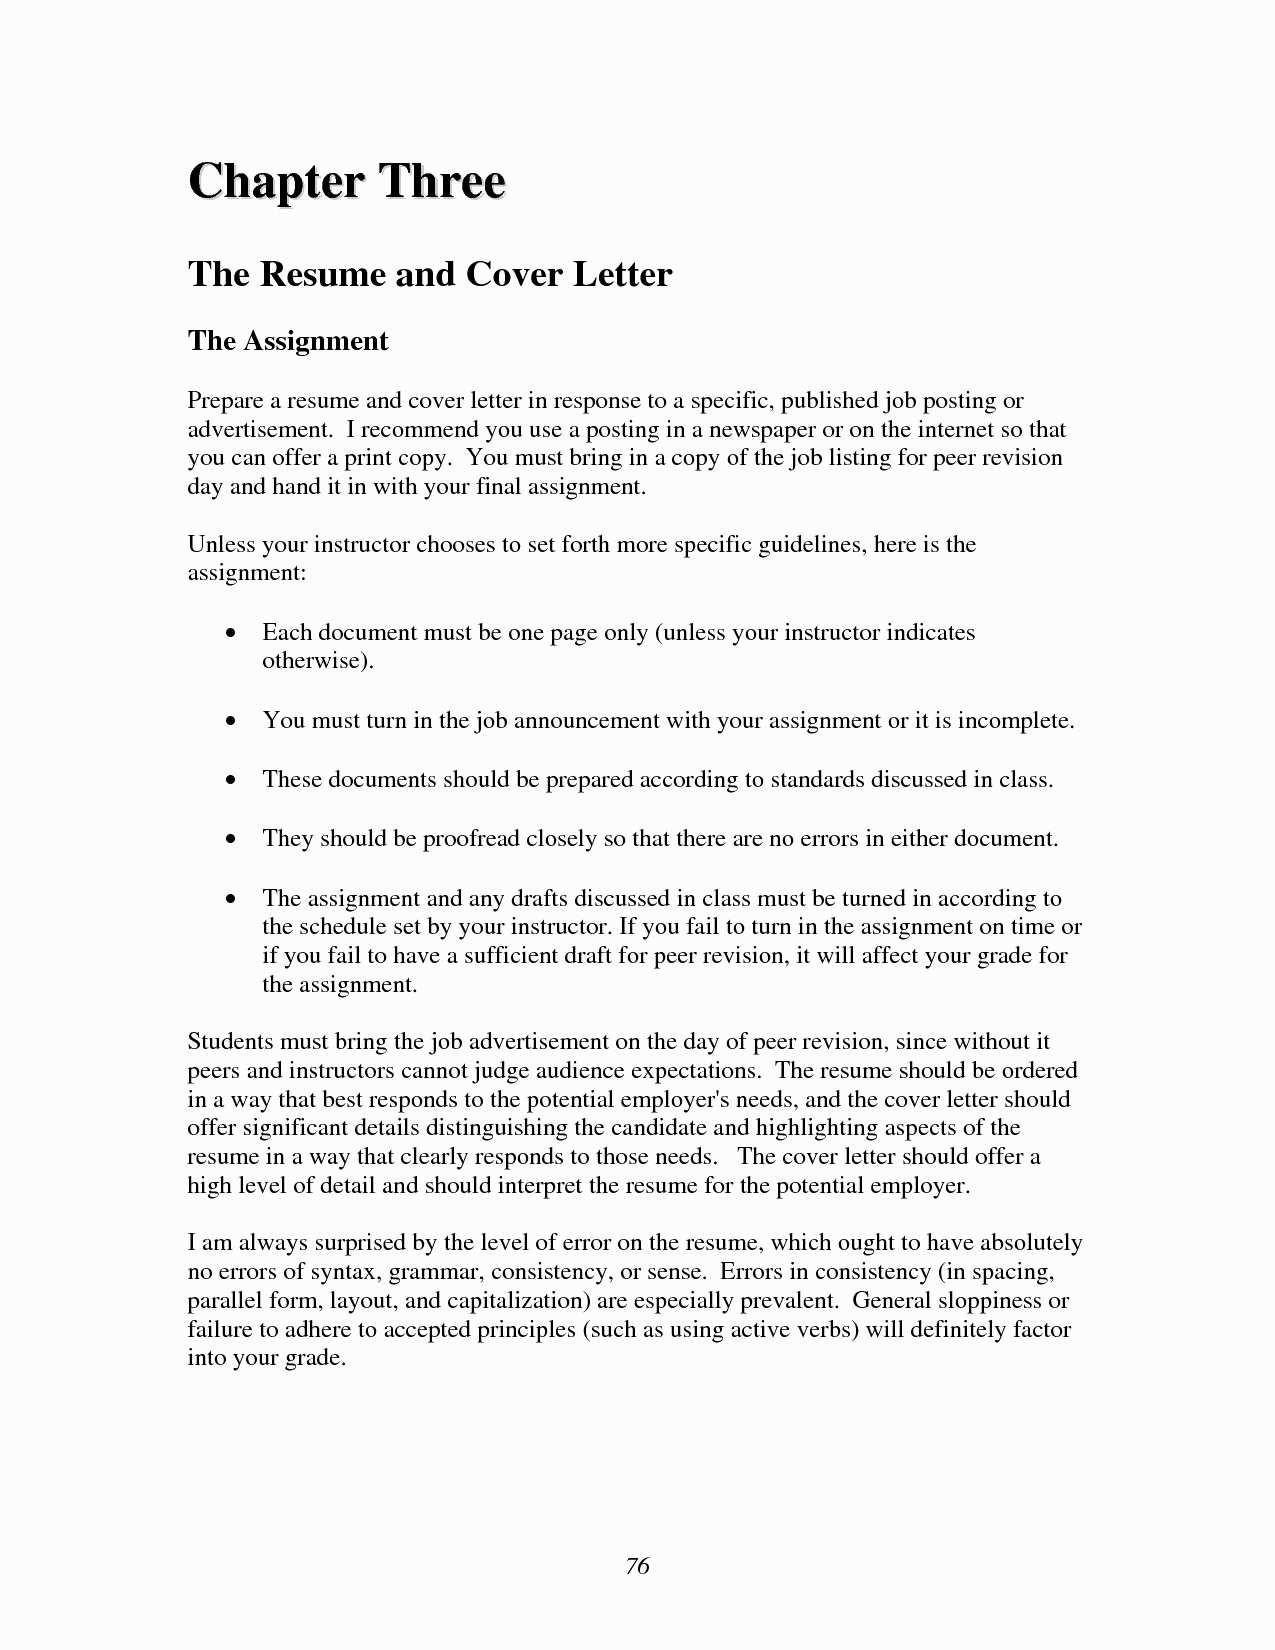 Property Management Cover Letter Template - Simple Job Cover Letter Examples Inspirational format A Cover Letter